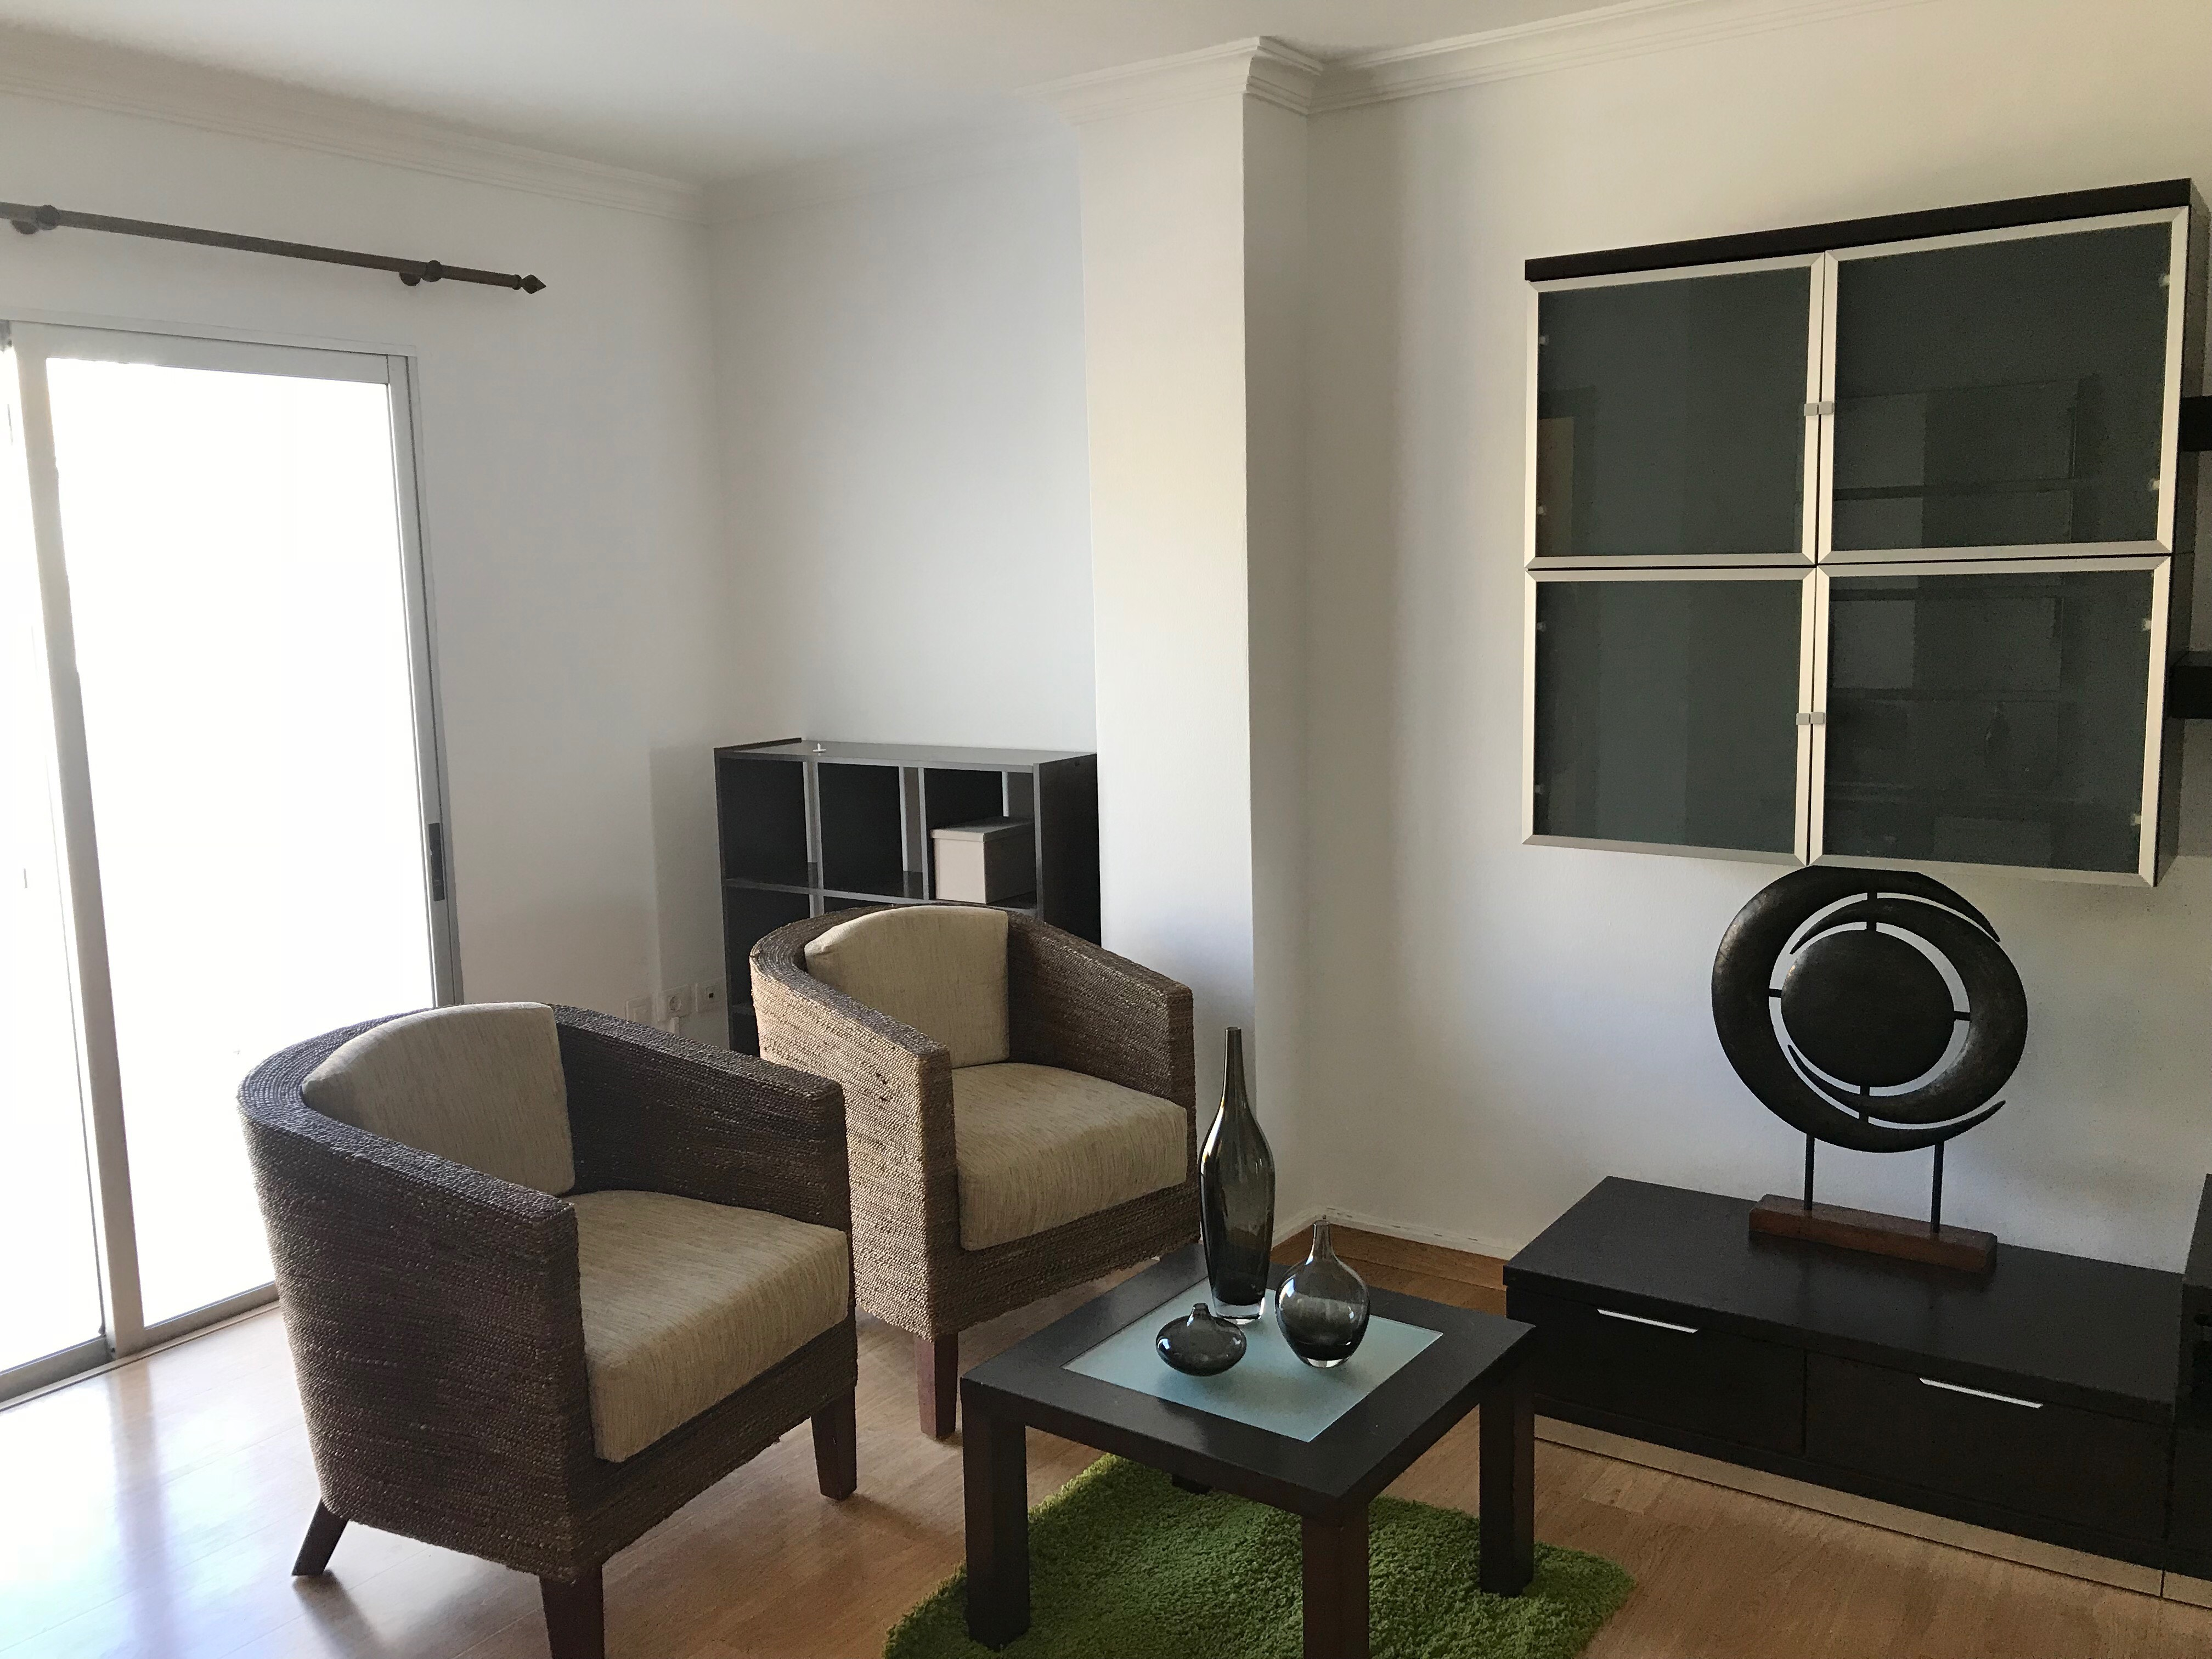 Penthouse Los Cristianos Miete Wohnzimmer